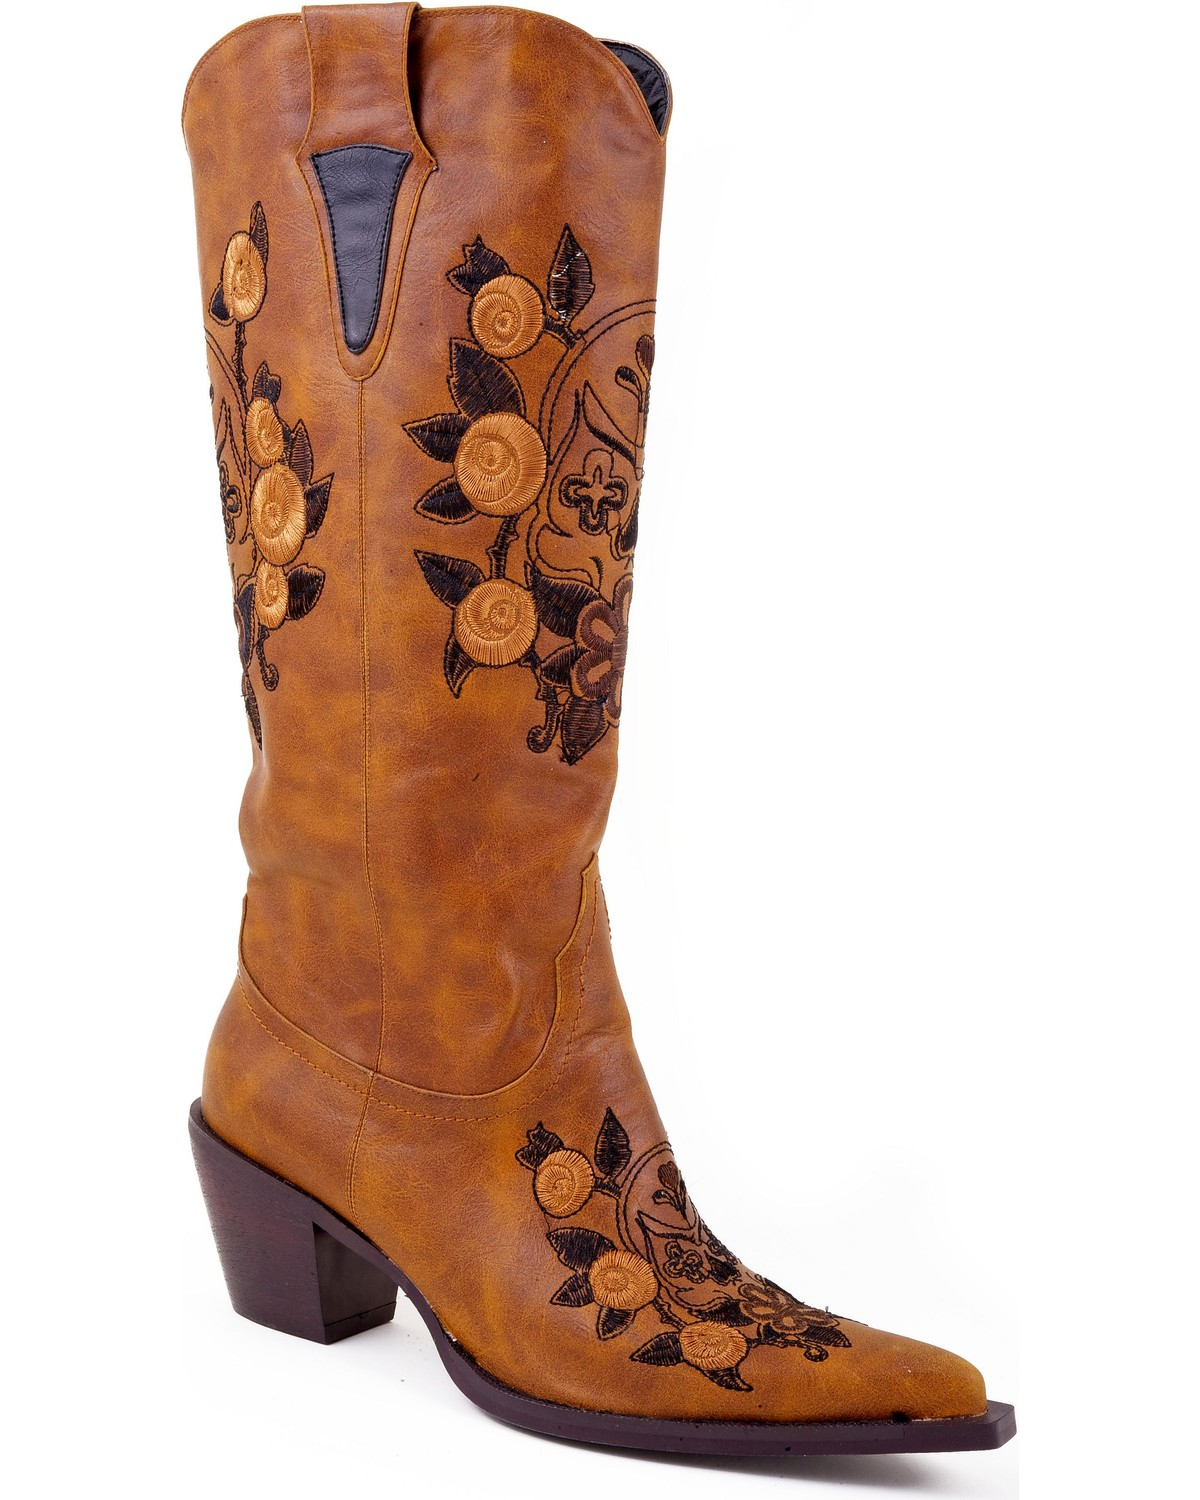 438f8c3caff Roper Women's Floral Rose and Skull Western Boots